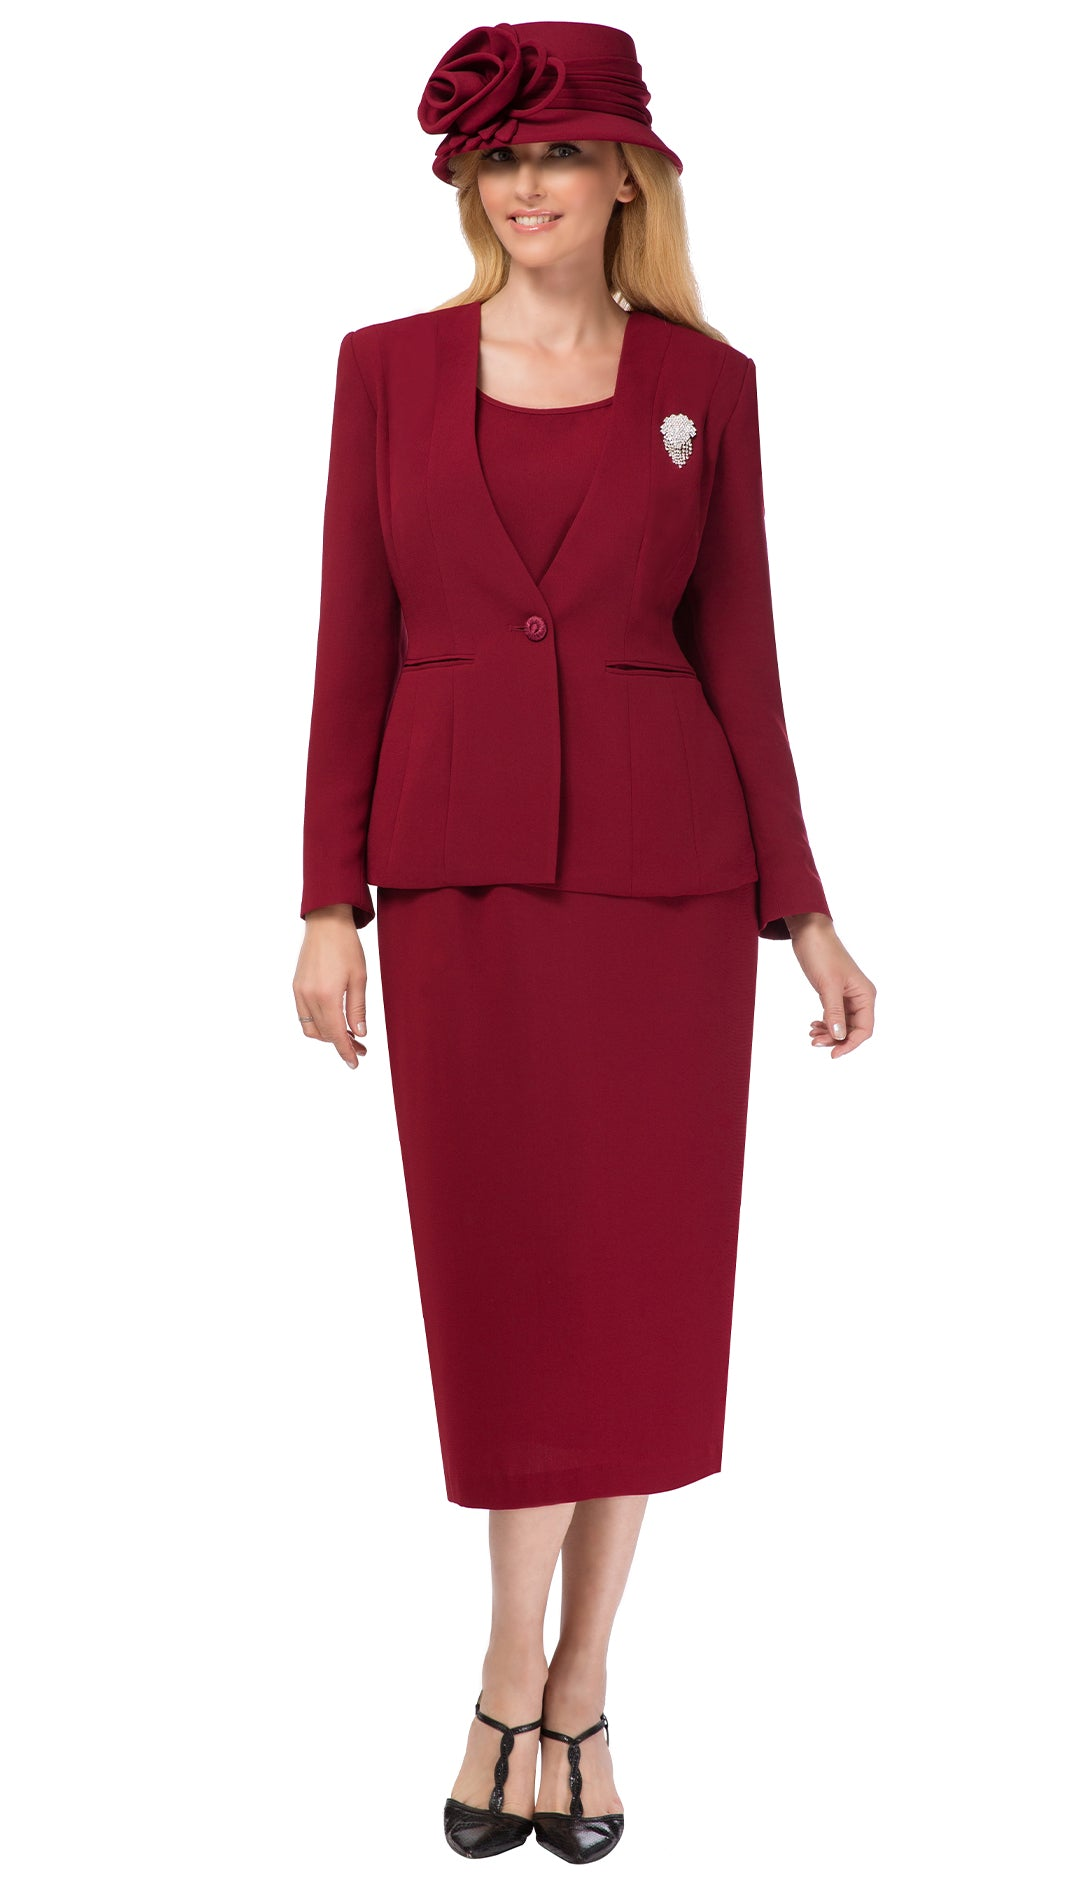 Giovanna Usher Suit 0825-Burgundy - Church Suits For Less